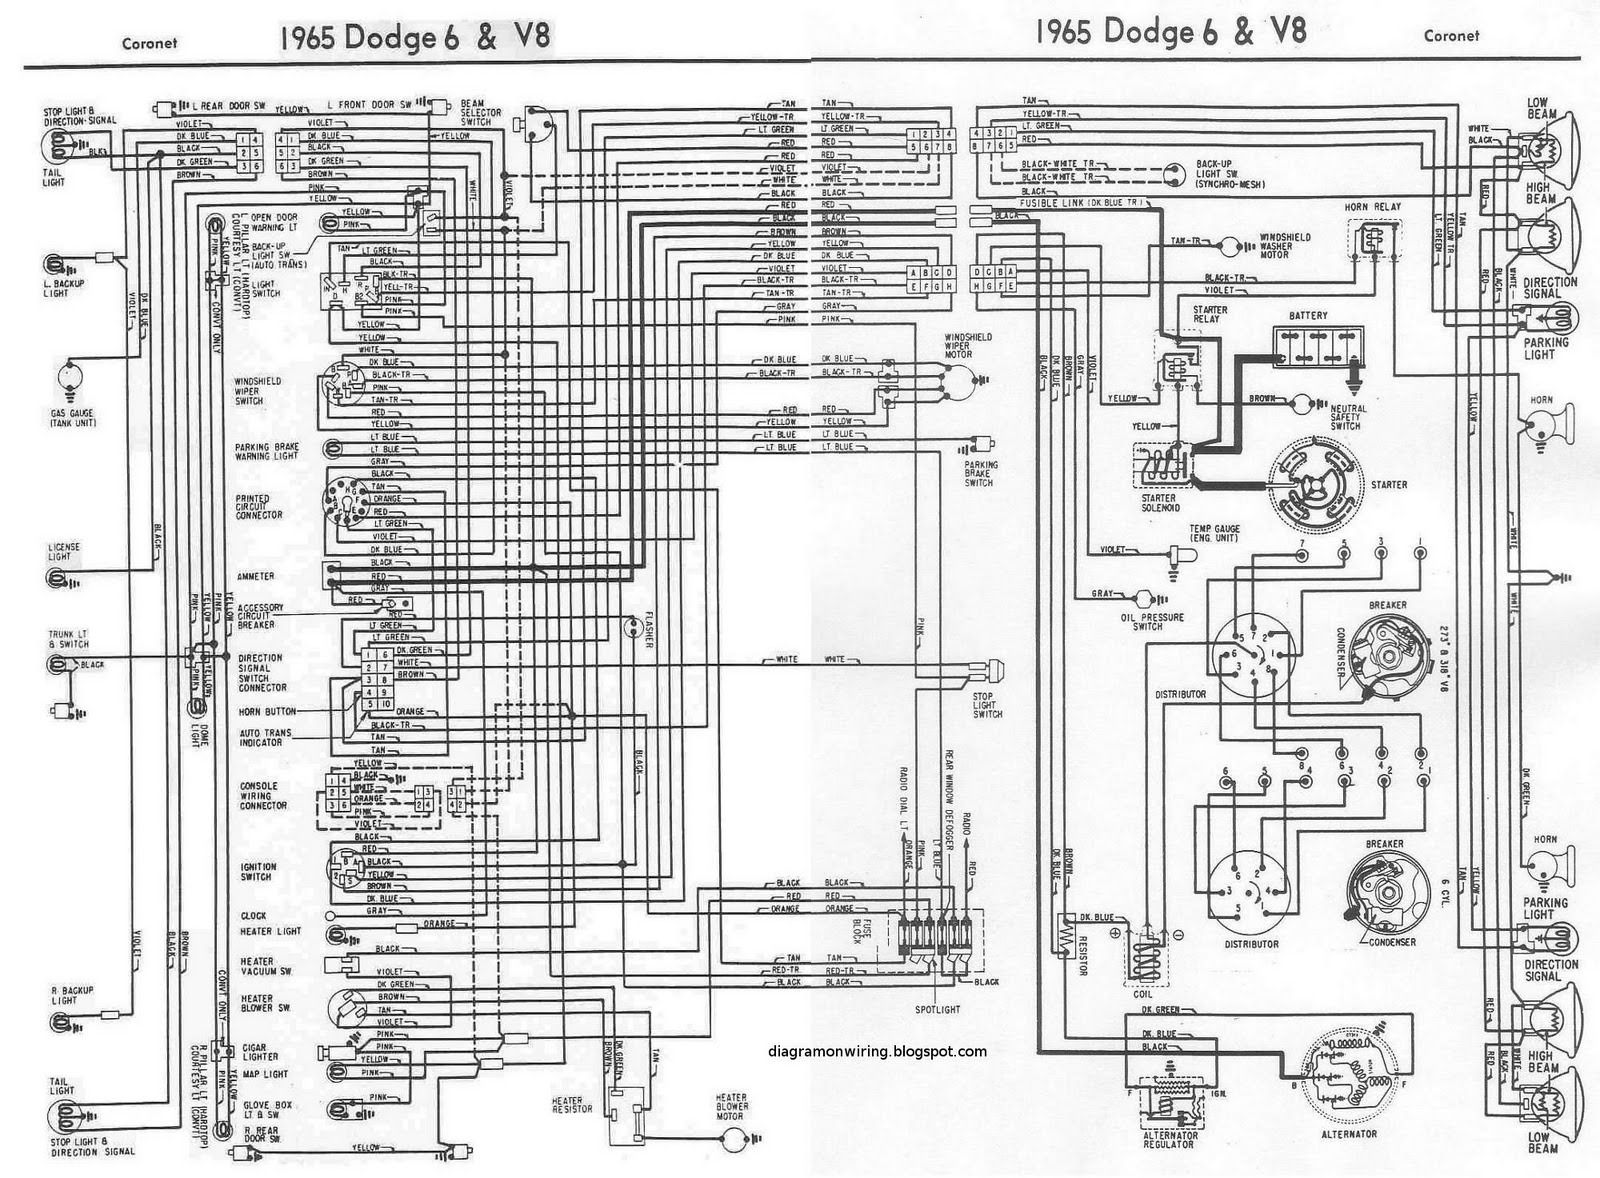 1969 Coronet Engine Wiring Diagram Diagrams Shelby Cobra Turn Signal Dodge Best Site Ford Basic